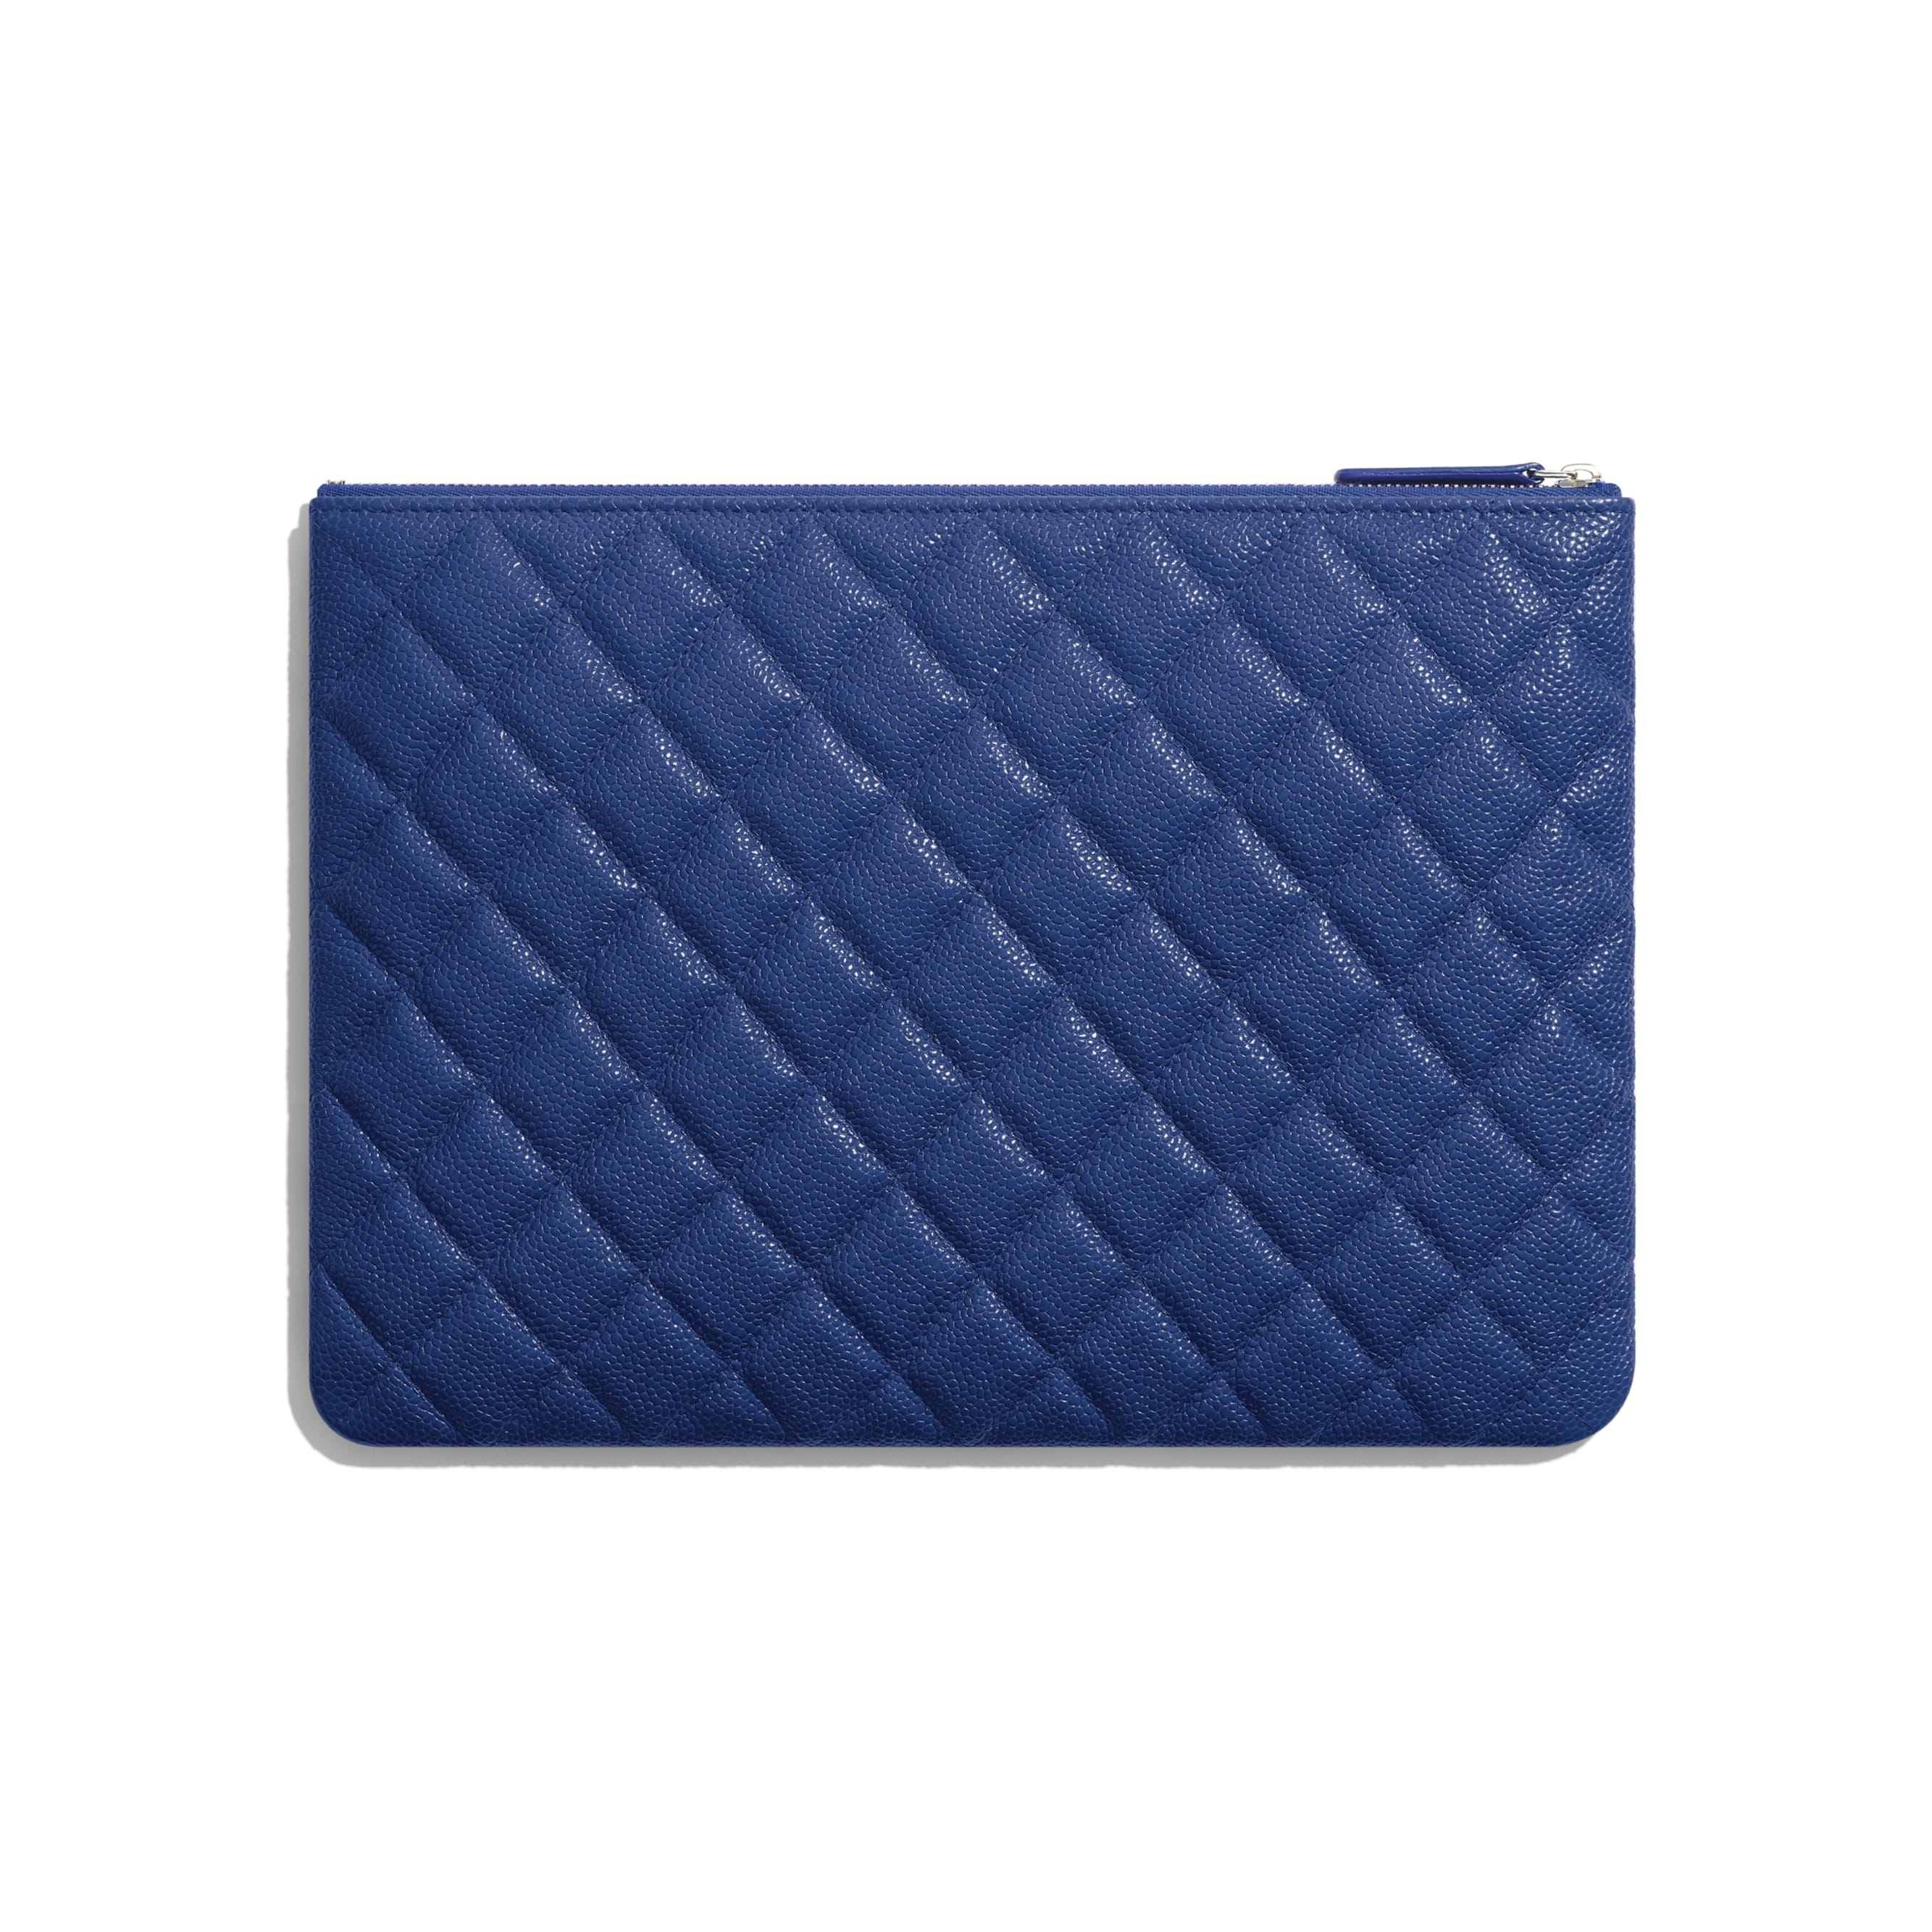 Pouch - Dark Blue - Grained Calfskin & Lacquered Metal - CHANEL - Alternative view - see standard sized version